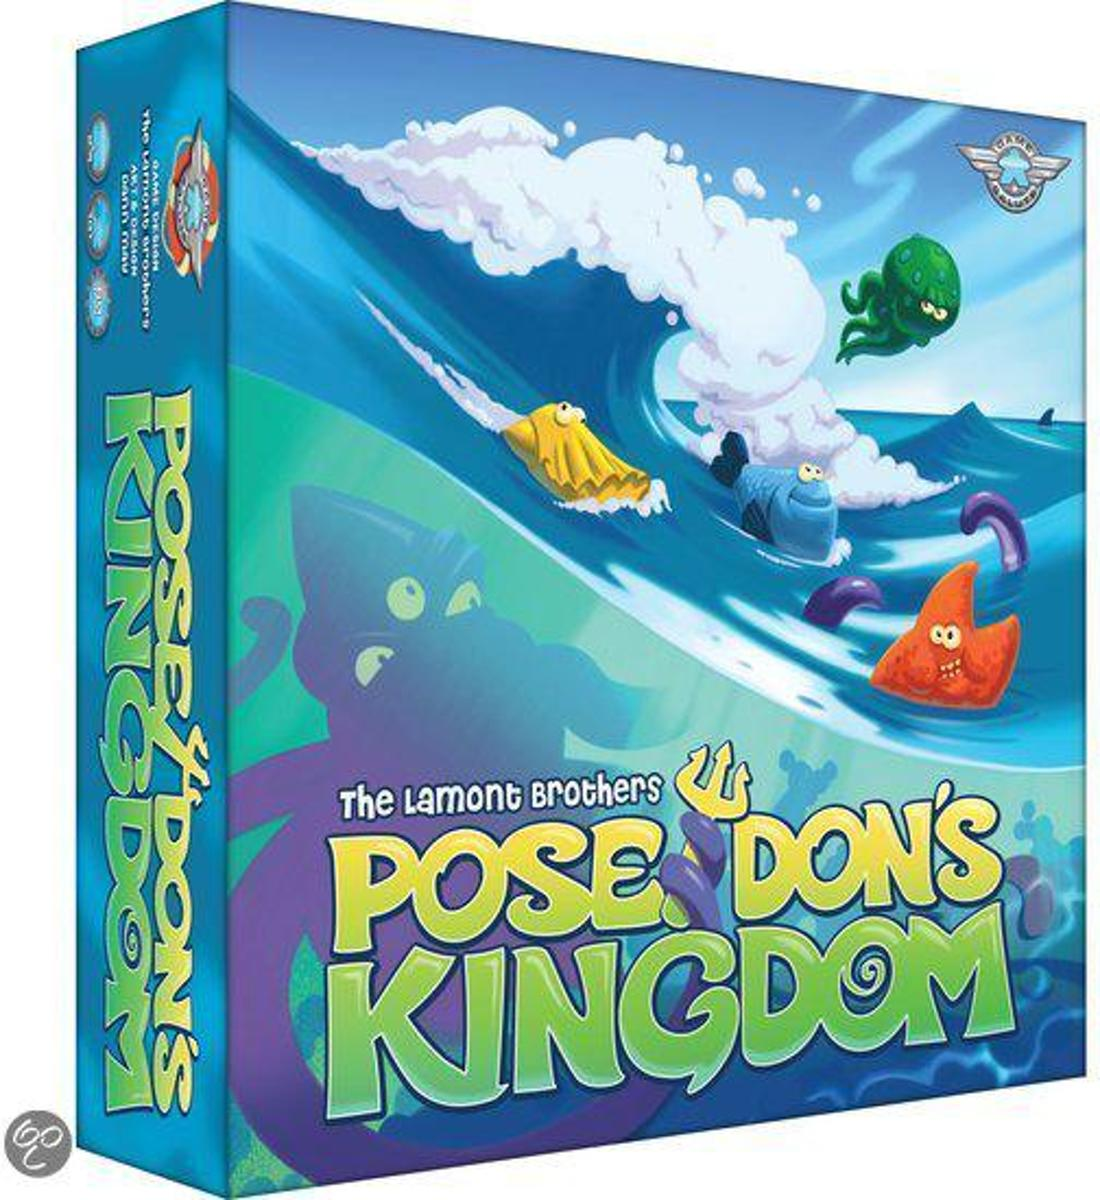 Poseidons Kingdom 2nd Edition